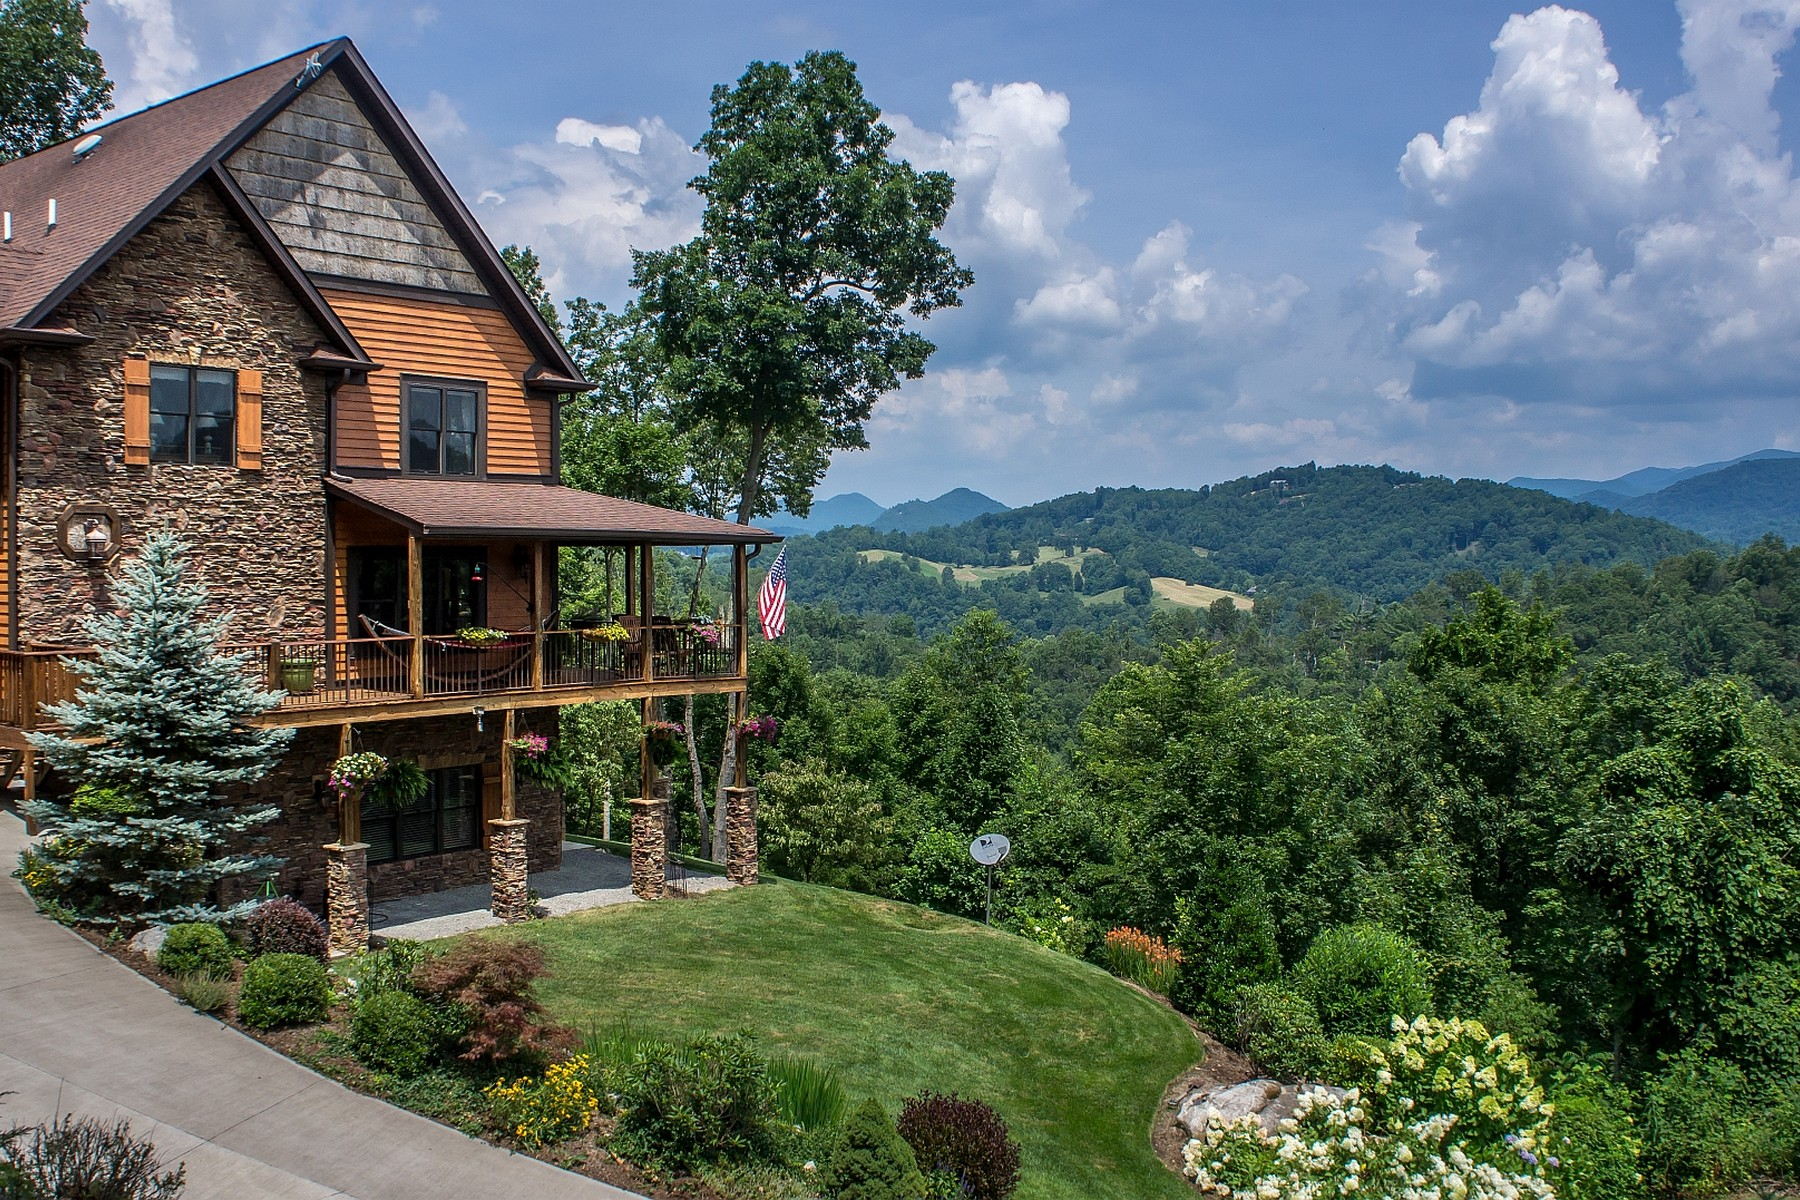 Single Family Home for Sale at Spectacular Mountain Chalet 710 Gordon Ridge Road, Butler, Tennessee, 37640 United States